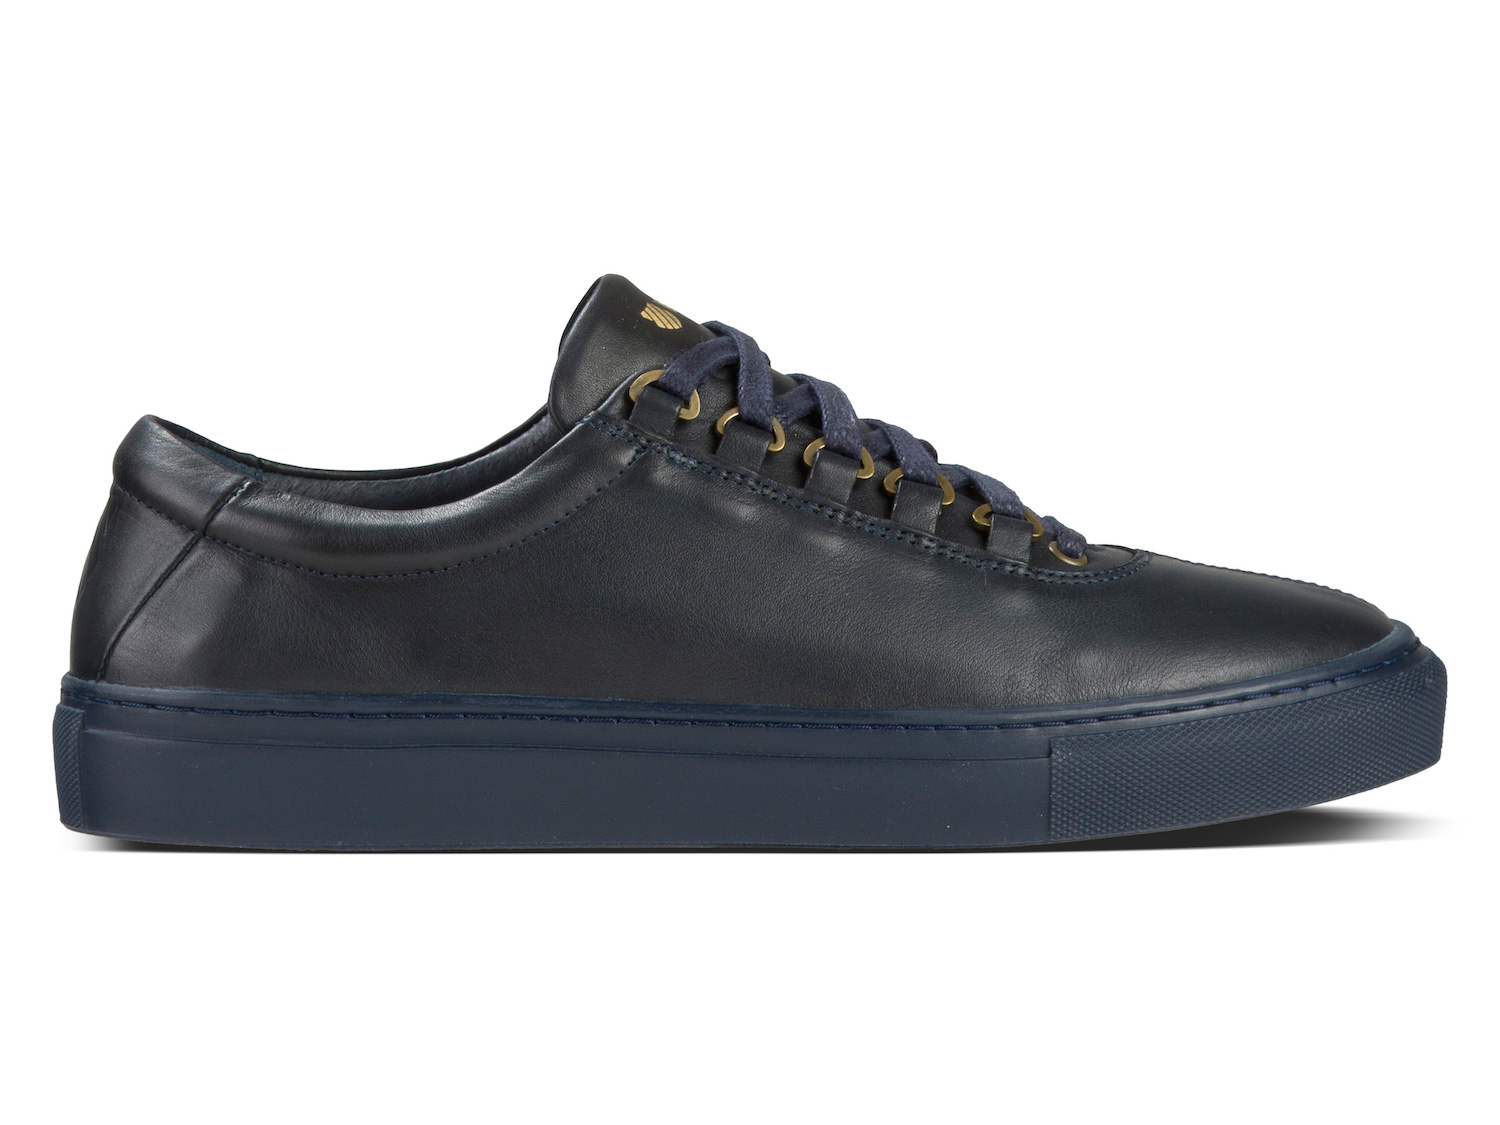 K-SWISS modern court collection Court Classico Black:Navy